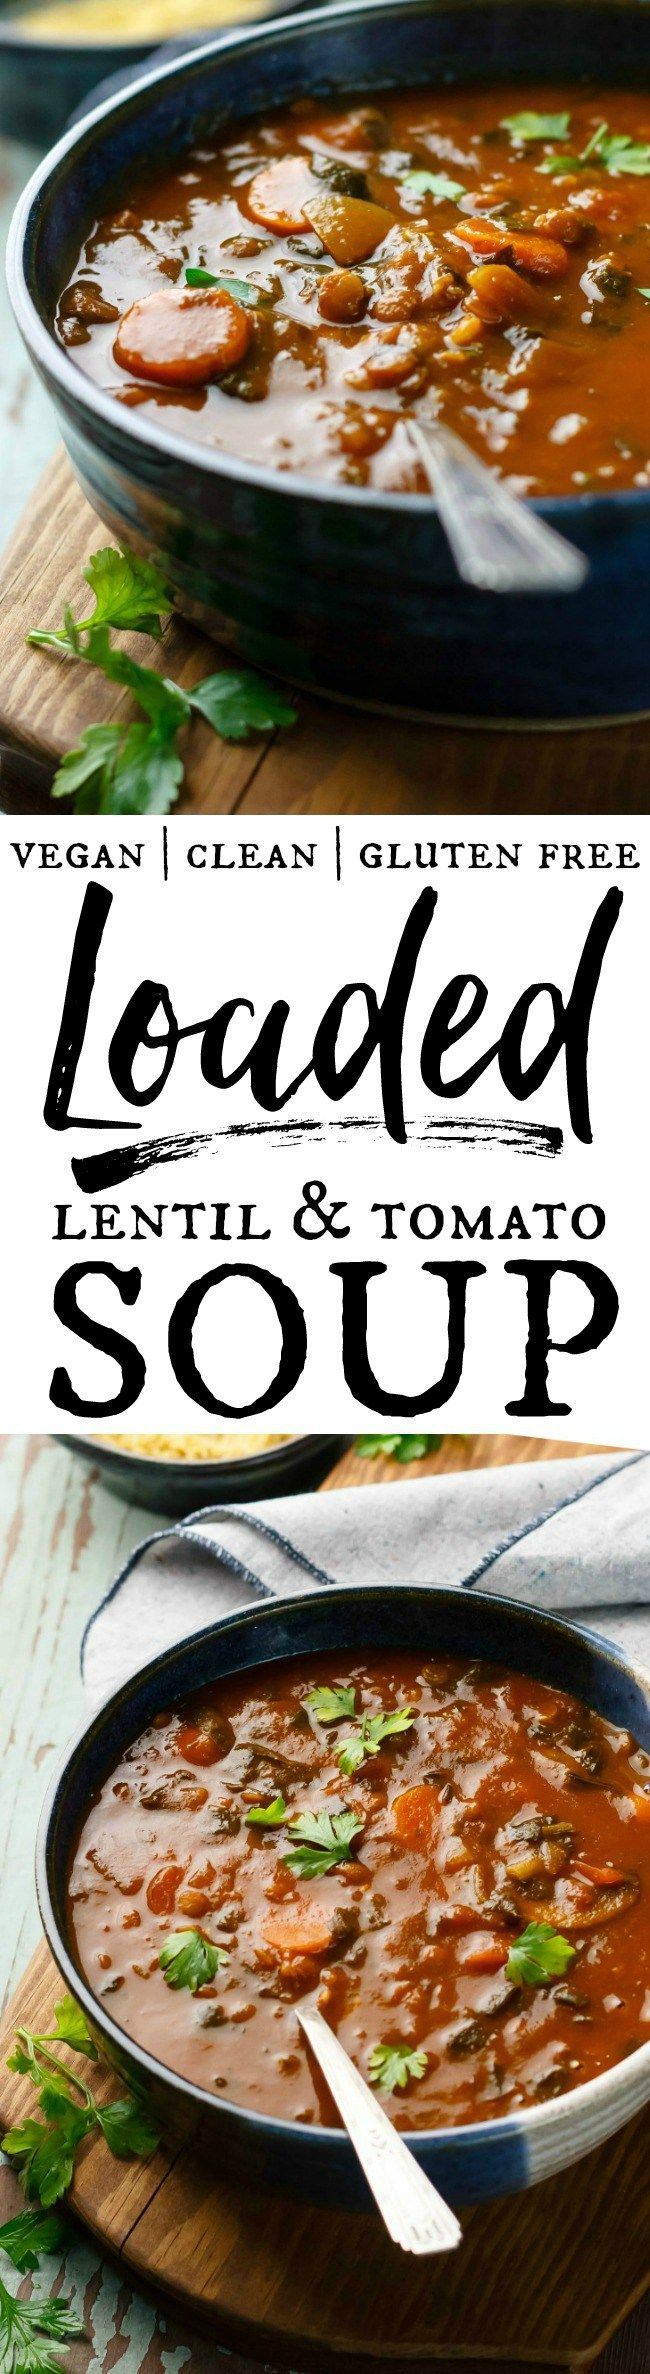 Loaded Lentil and Tomato Soup, healthy, filling and full of flavor!